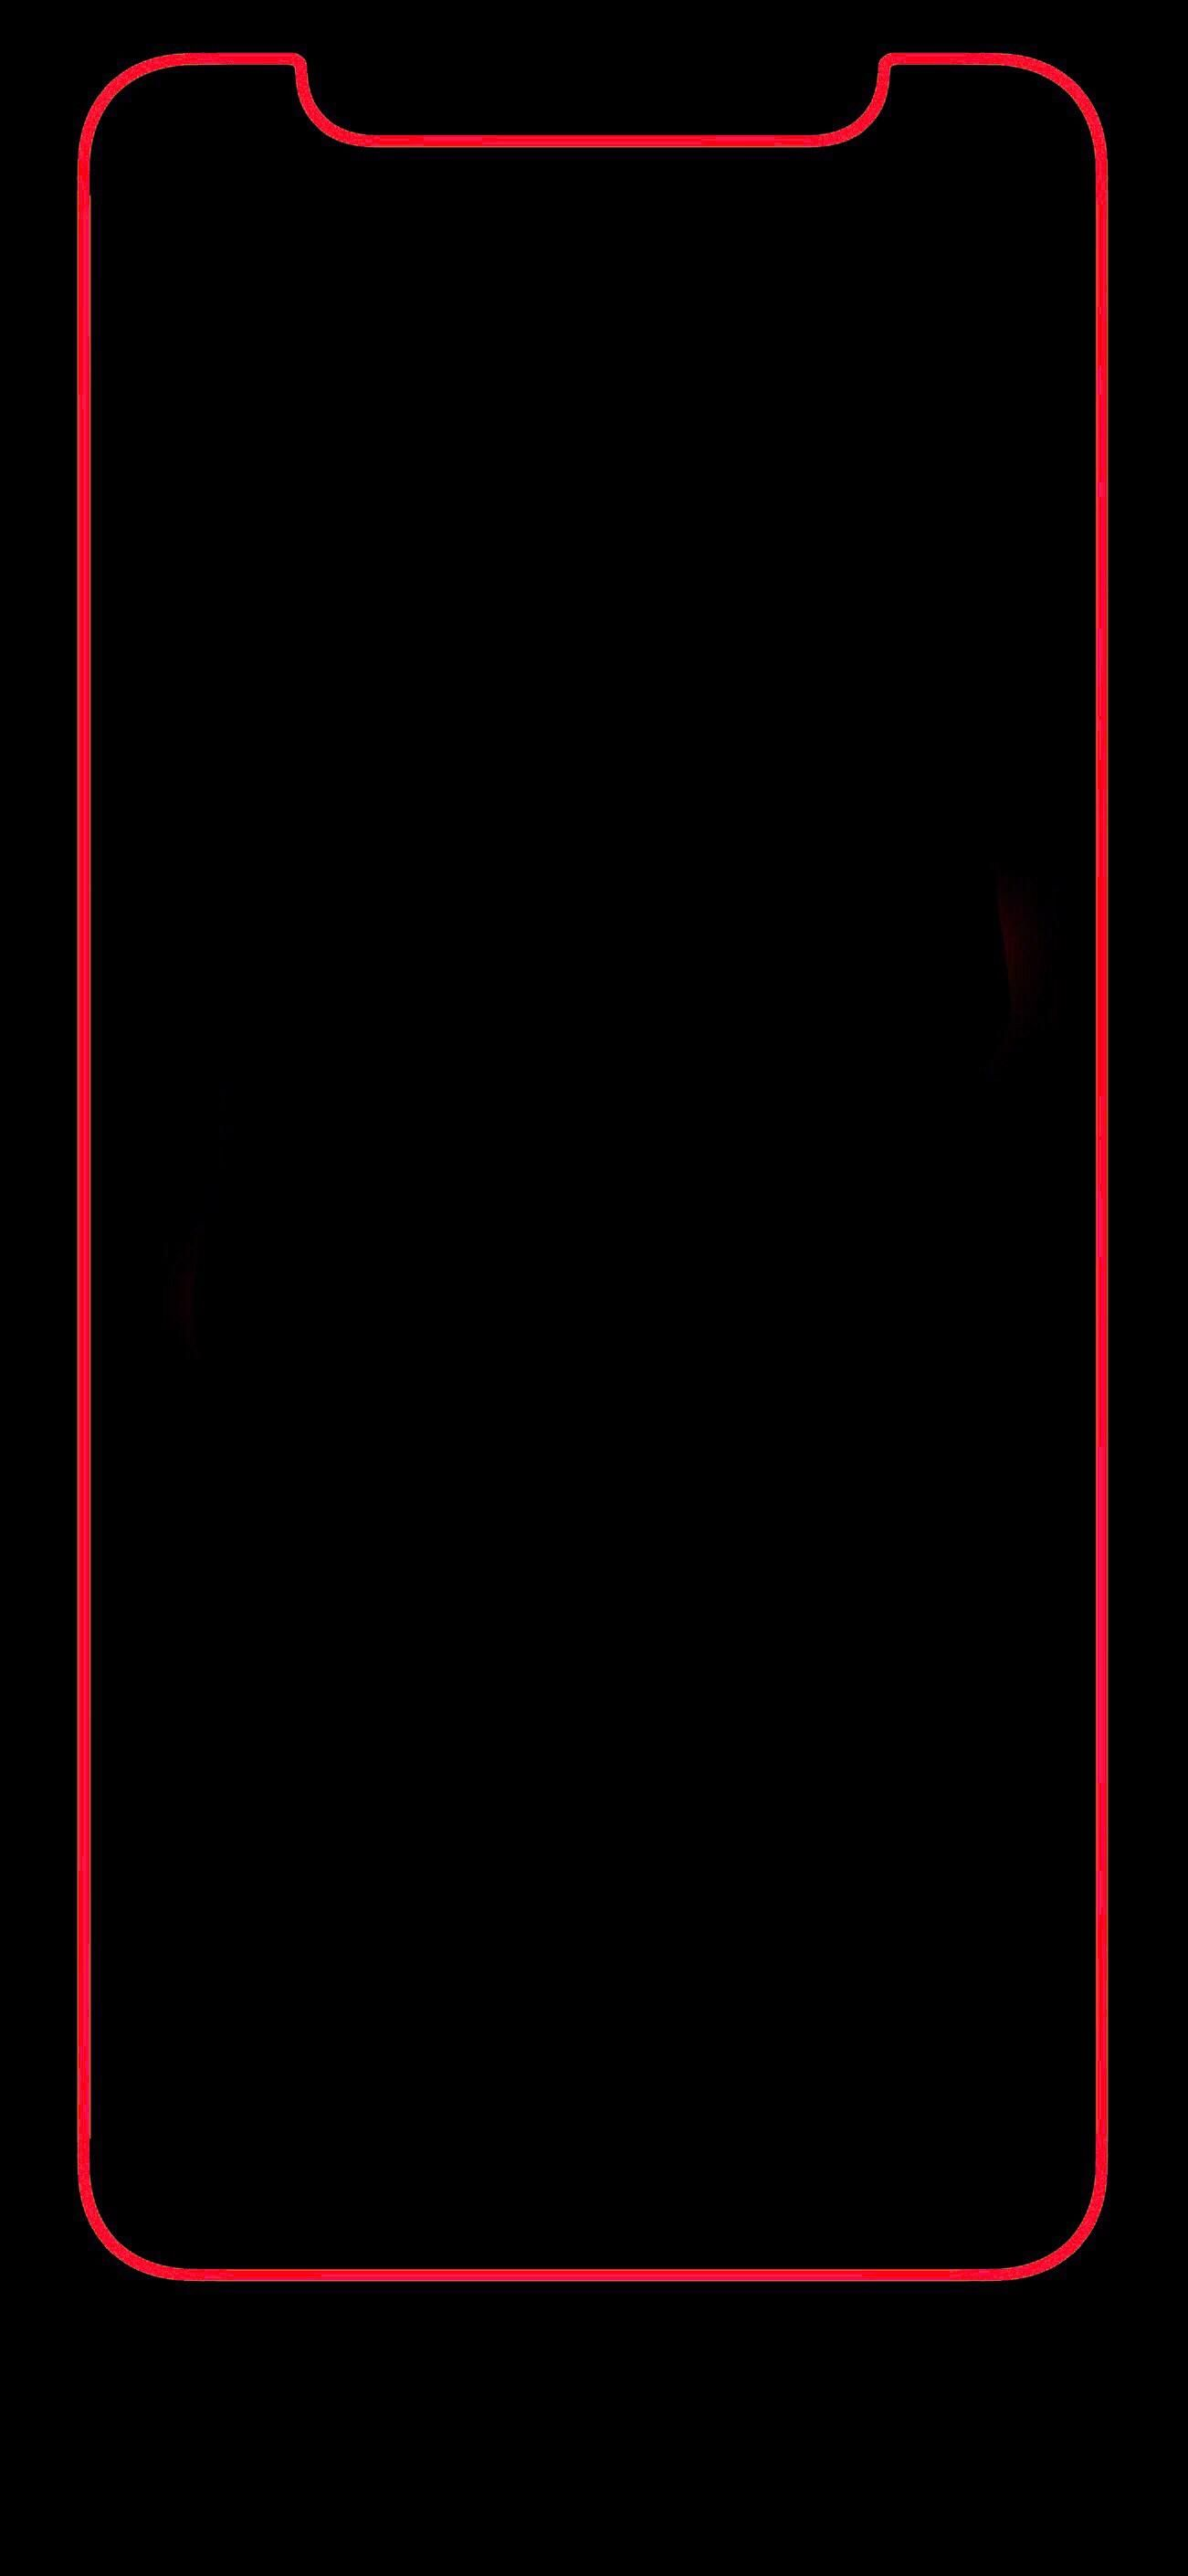 iPhone X red bold border looks great :) | iPhone Wallpaper en 2019 | Iphone red wallpaper, Black ...